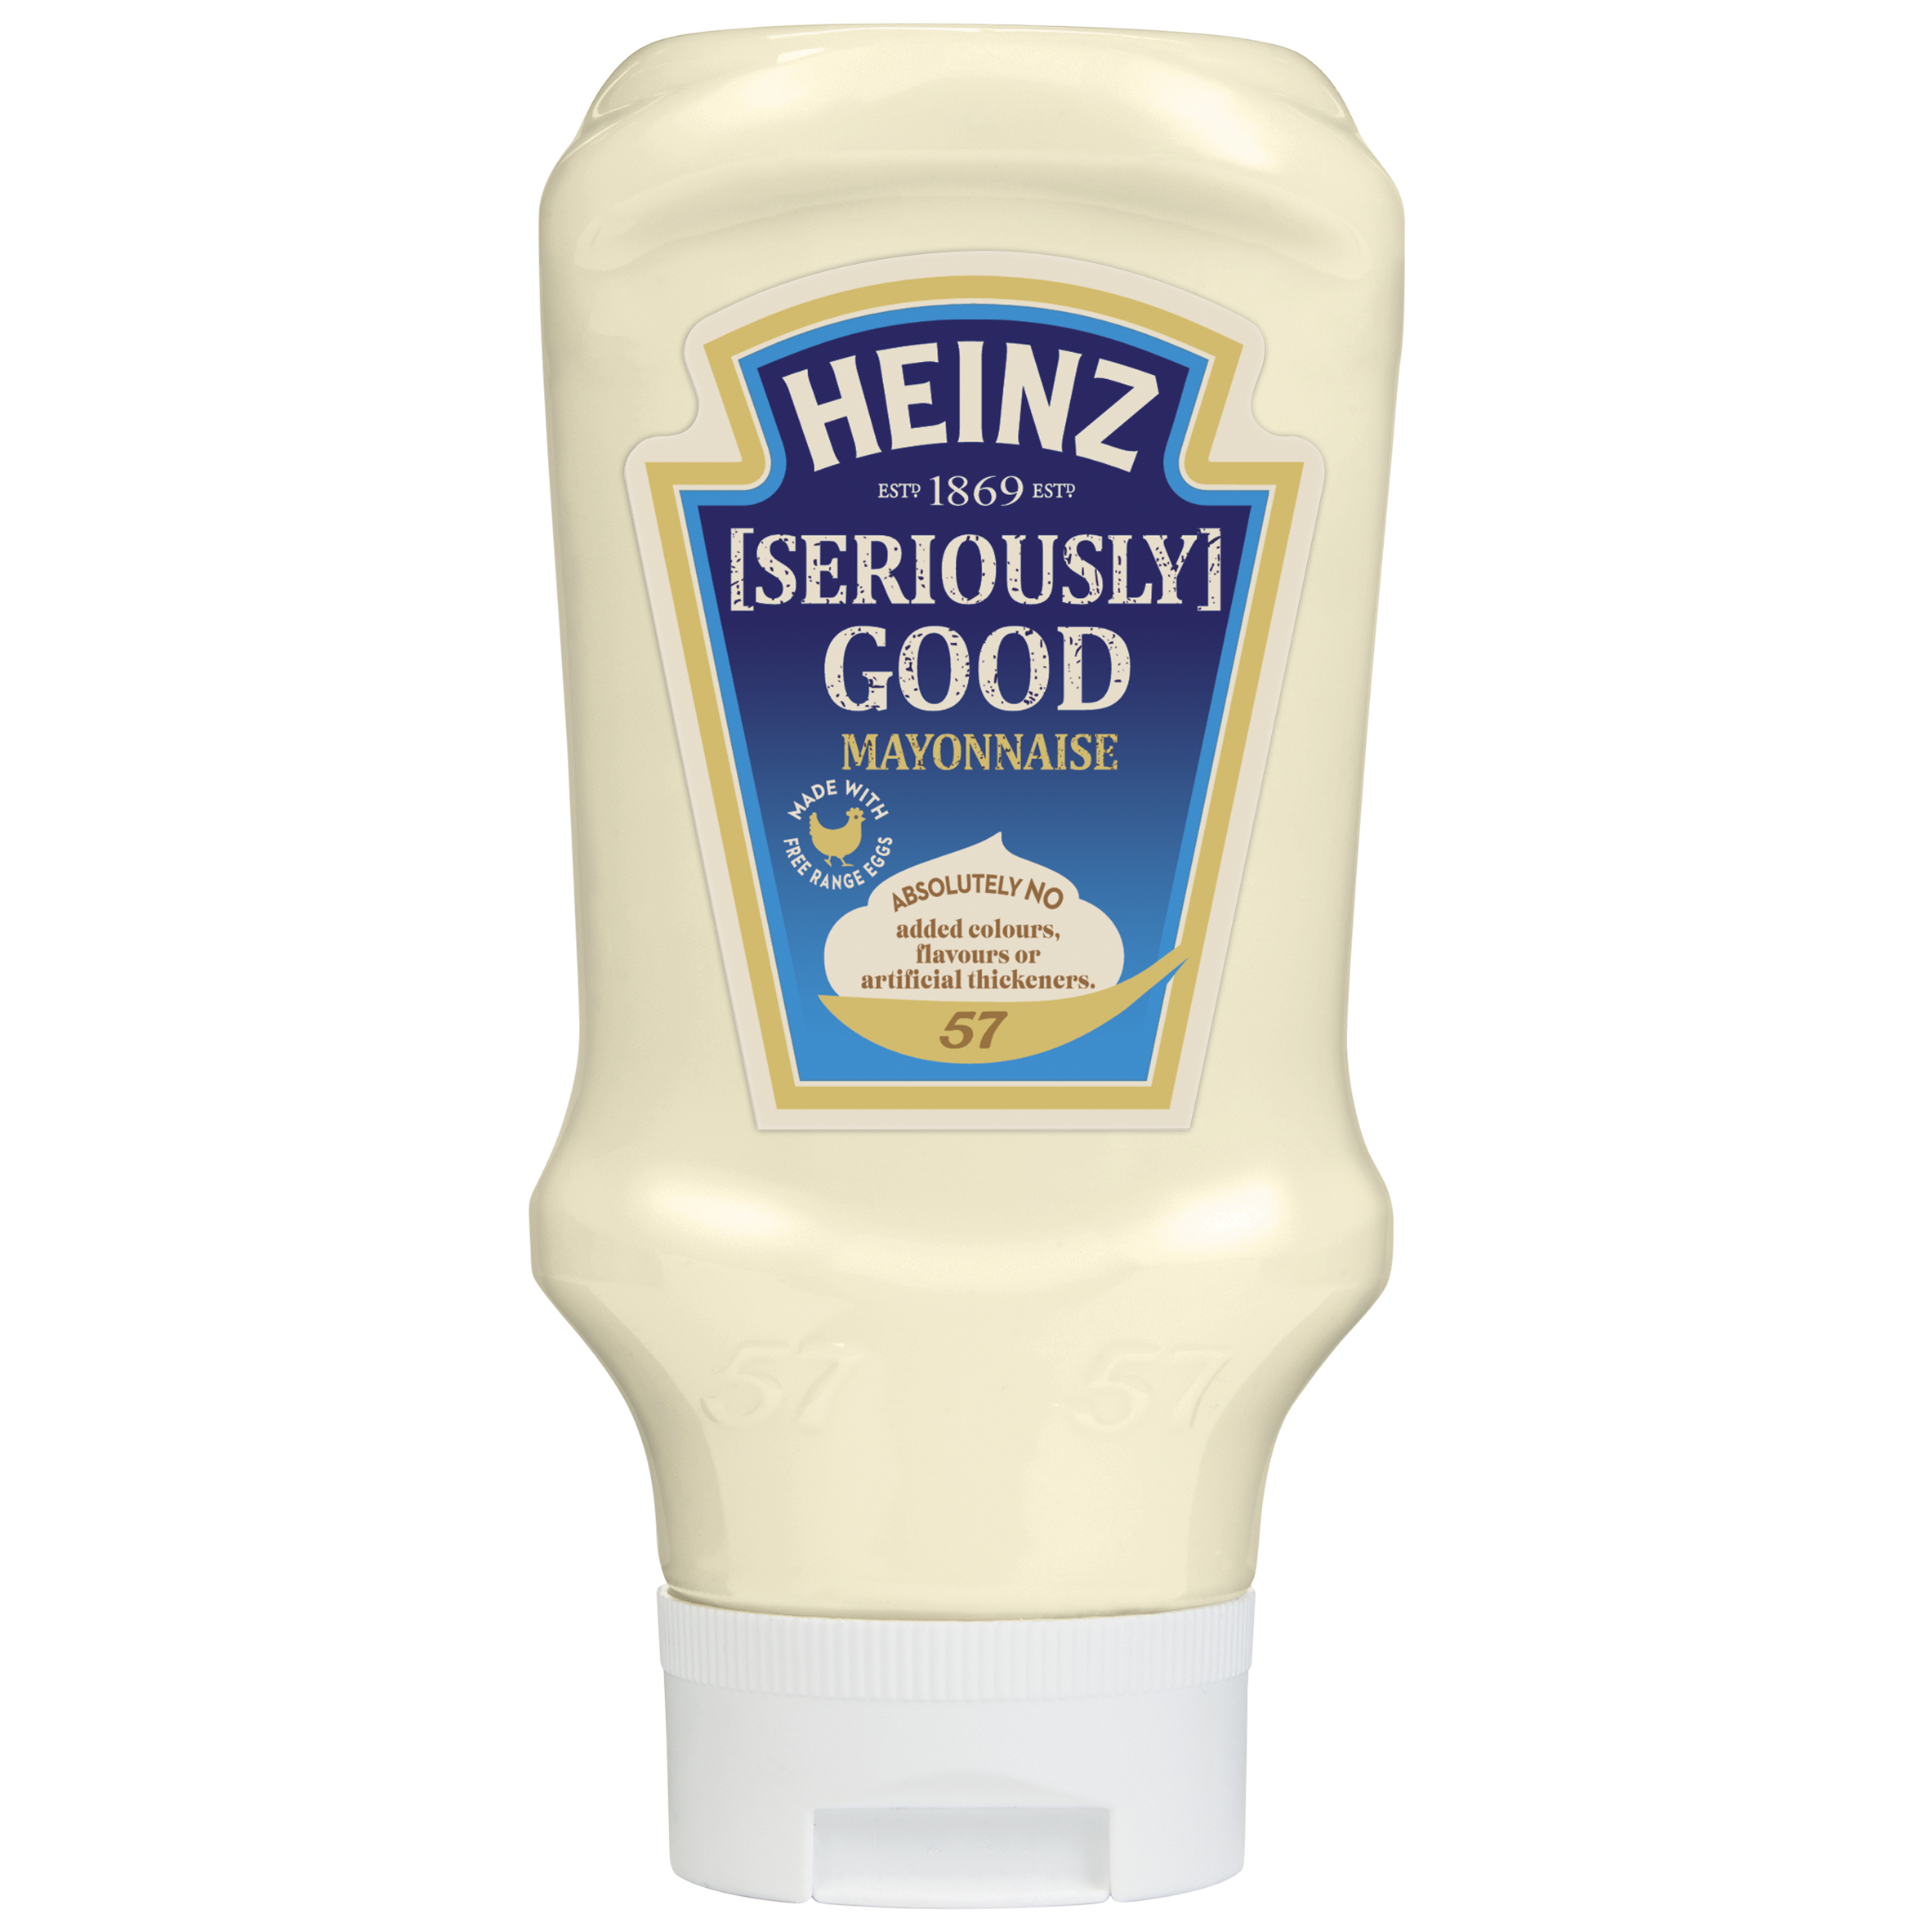 Photograph of 1 x 395g Heinz [Seriously] Good Mayonnaise product